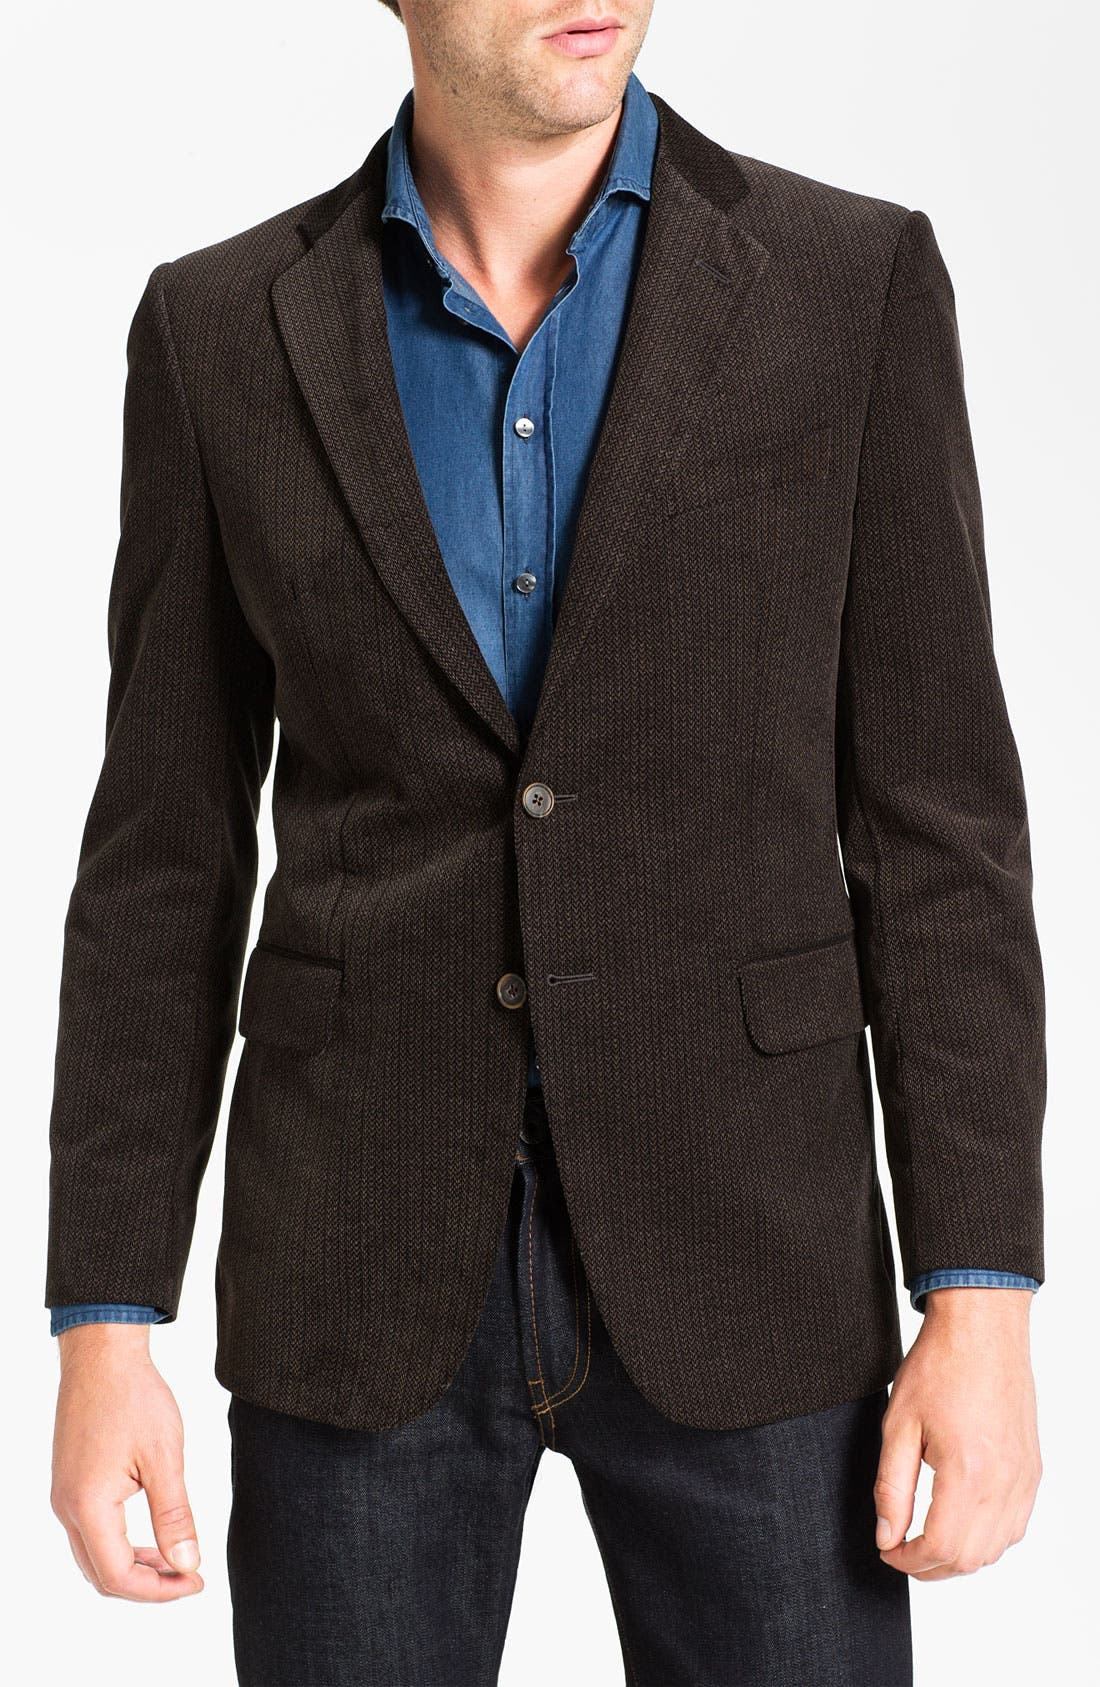 Alternate Image 1 Selected - Joseph Abboud Herringbone Cotton Sportcoat